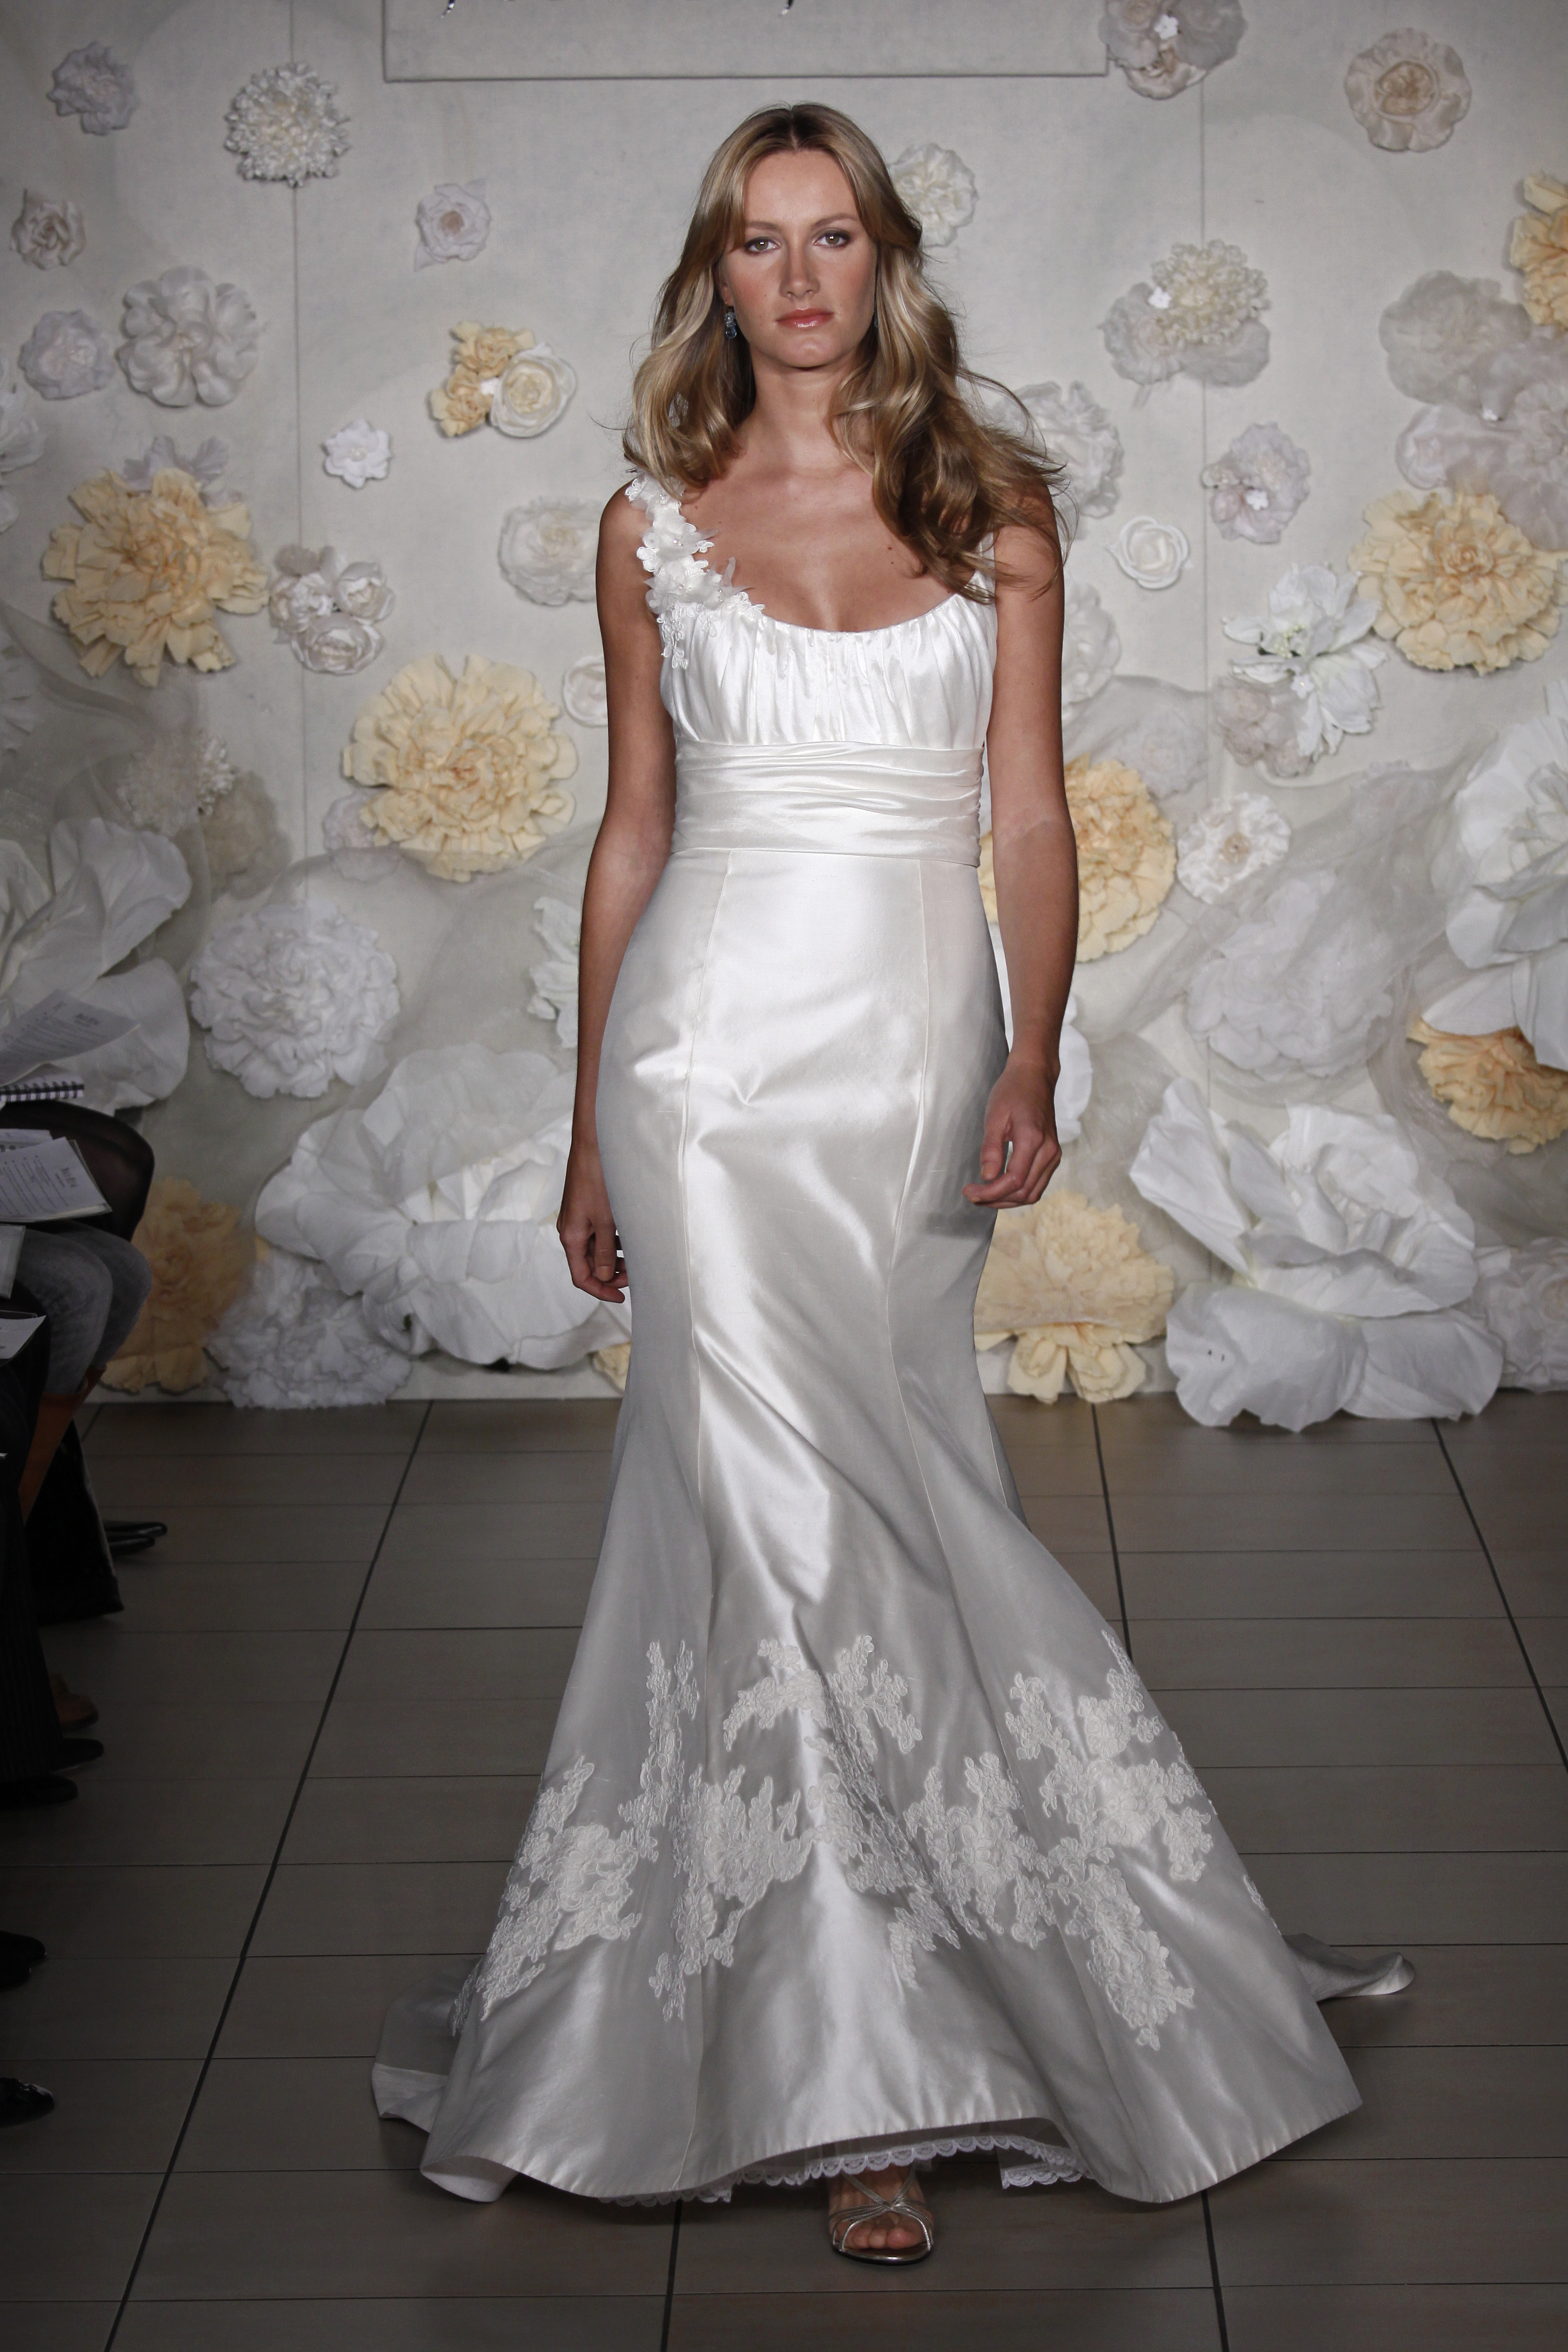 Wedding Dresses, Fashion, dress, Alvina valenta, Jlm couture jim hjelm